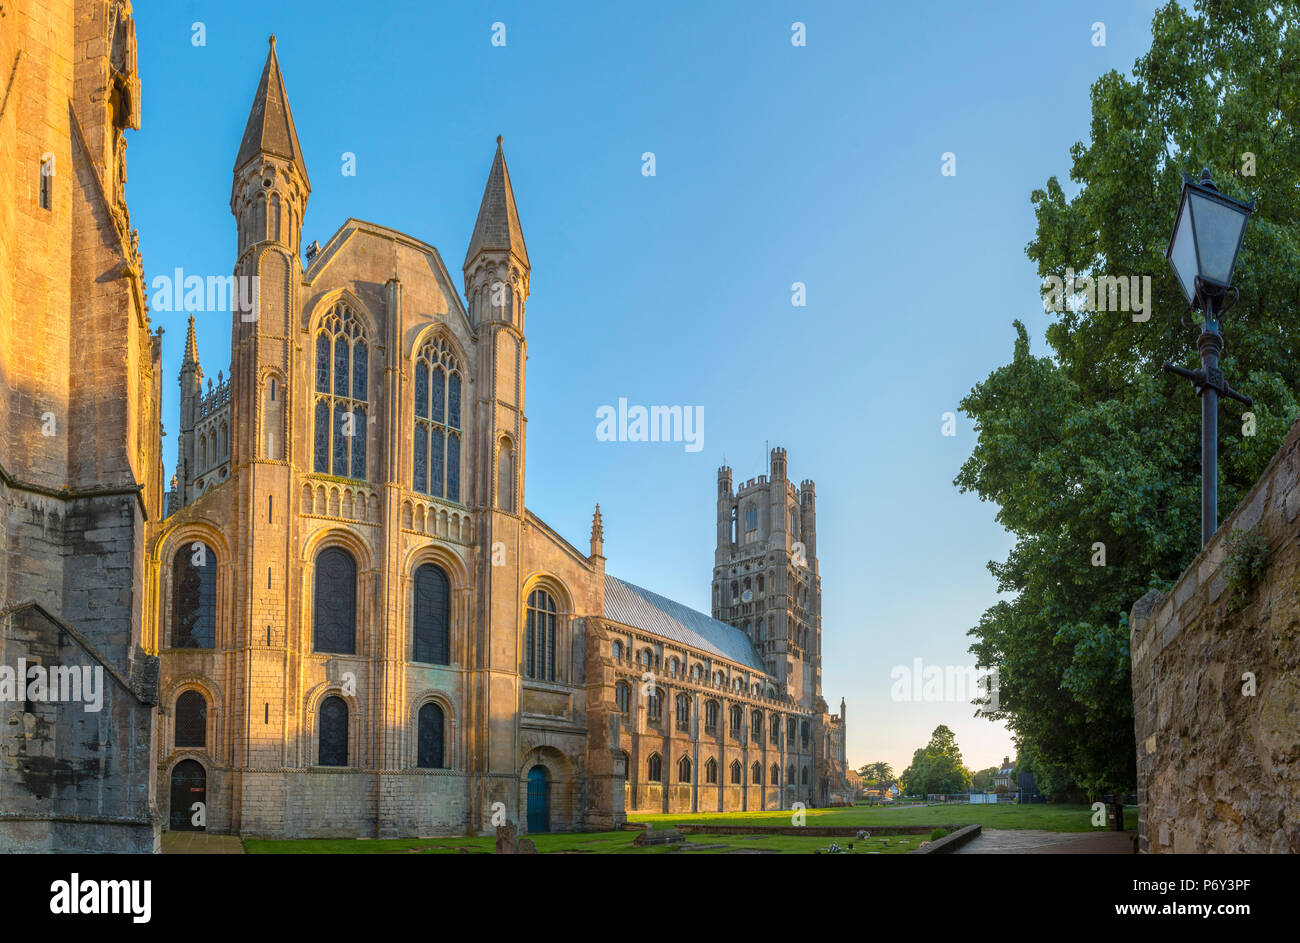 UK, England, Cambridgeshire, Ely, Ely Cathedral - Stock Image